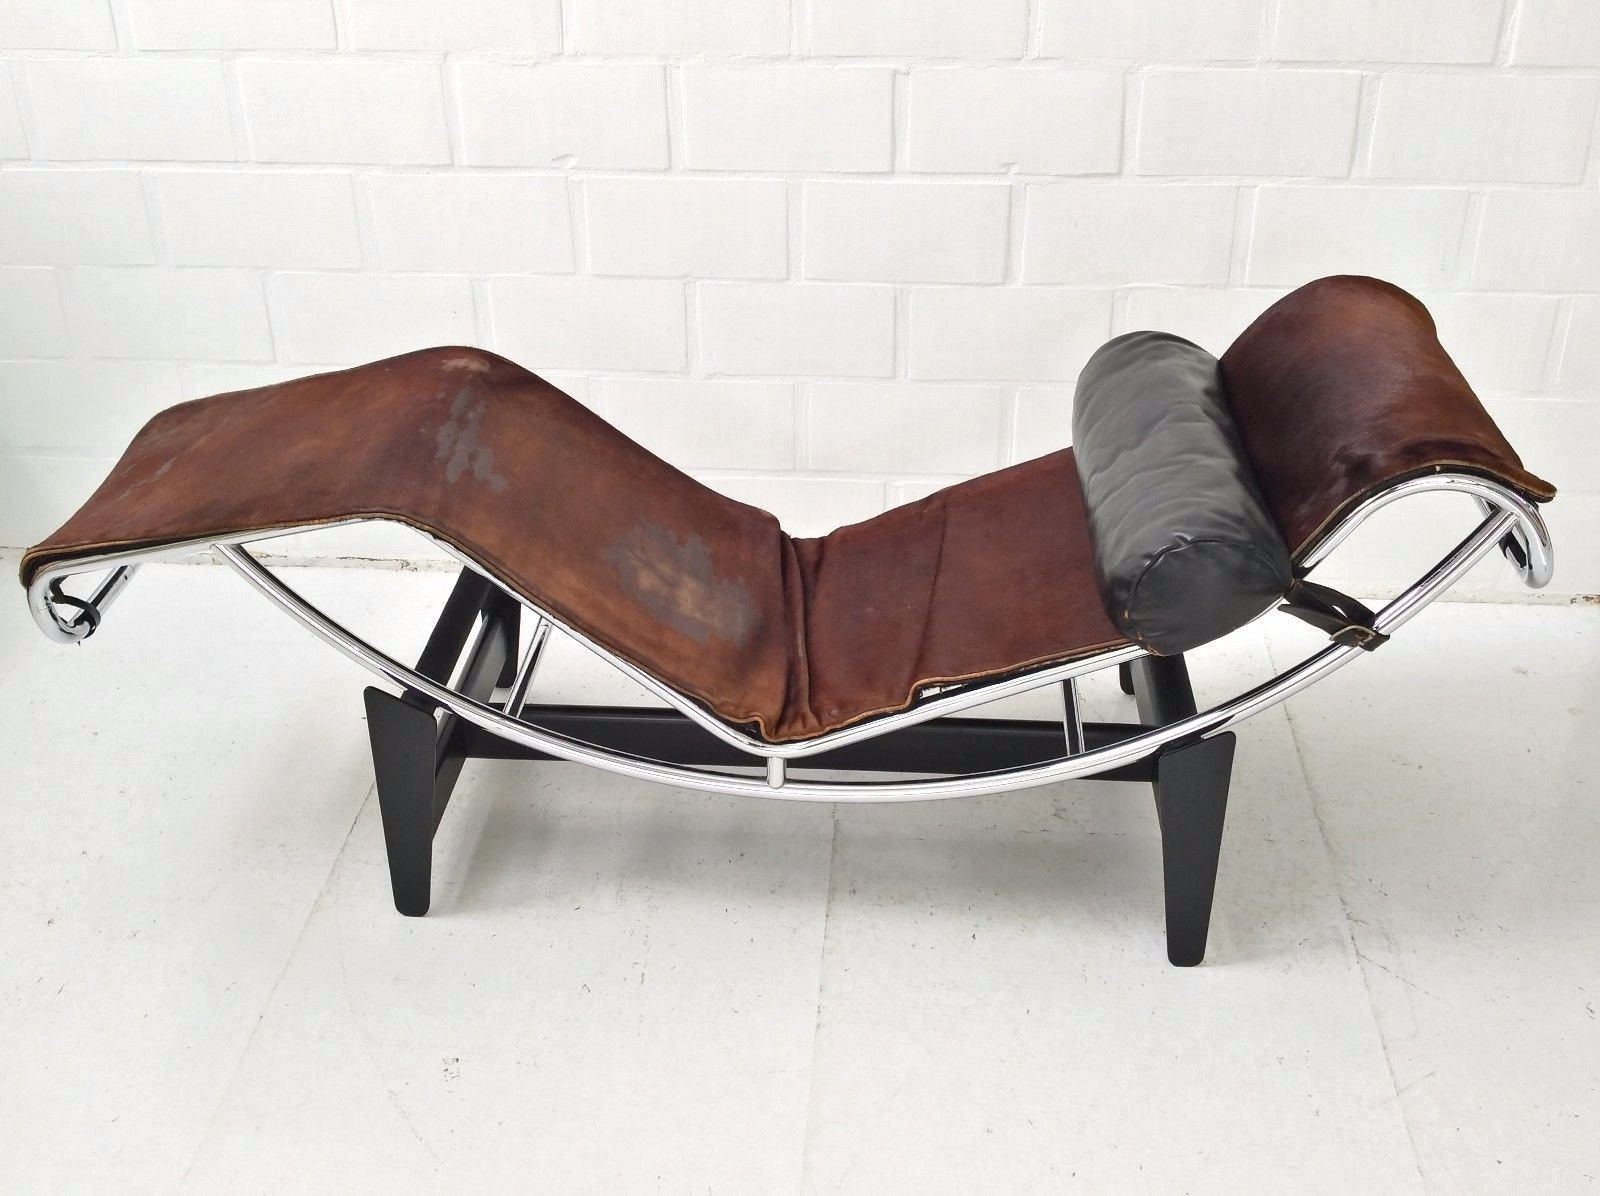 lc4 chaise longue by le corbusier charlotte perriand